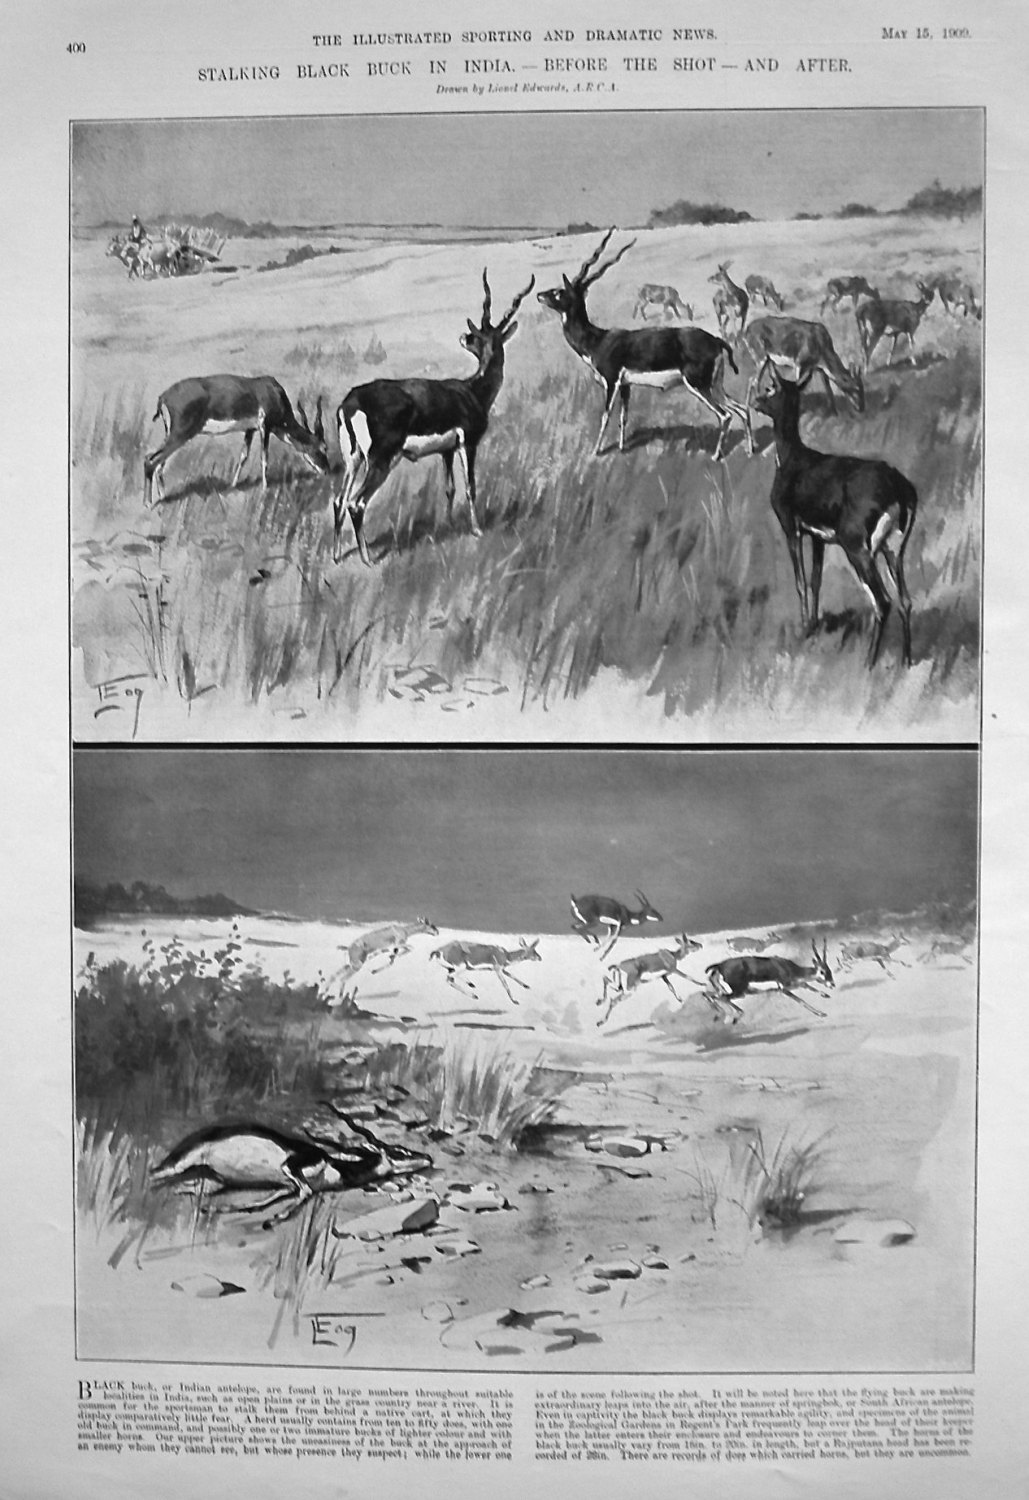 Stalking Black Buck in India. - Before the Shot - and After.